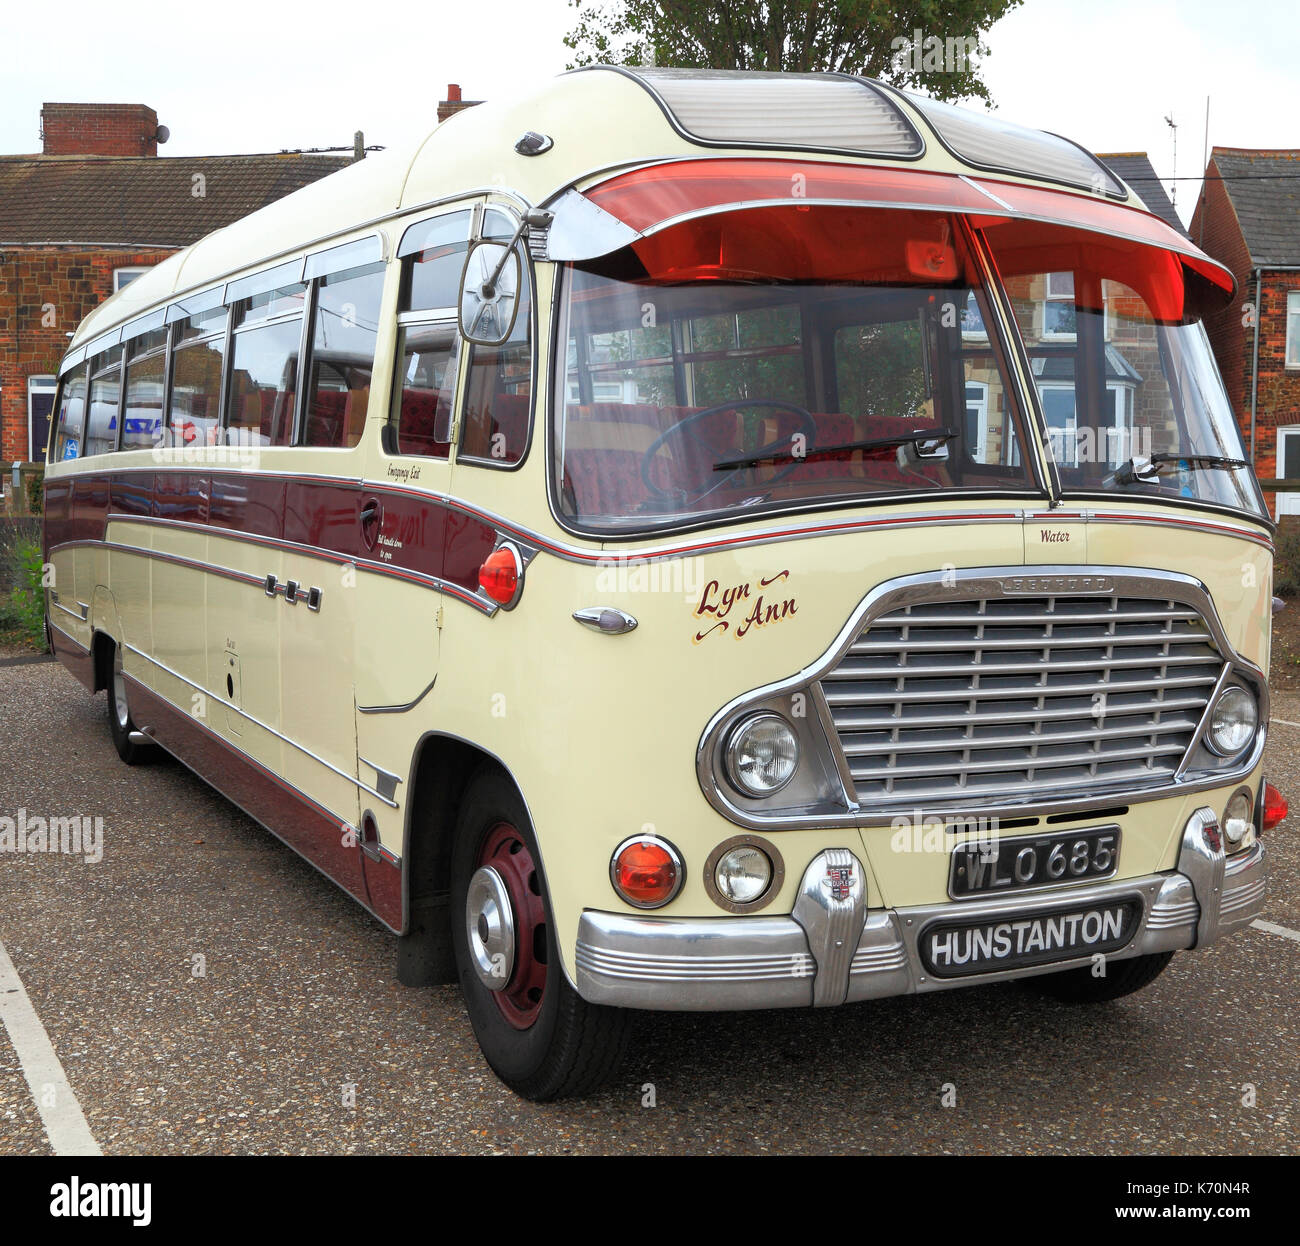 Vintage coach, built 1959,  coaches, Spratt's Coaches, bus, busses, made by Bedford,  Wreningham, Norfolk, England, UK - Stock Image